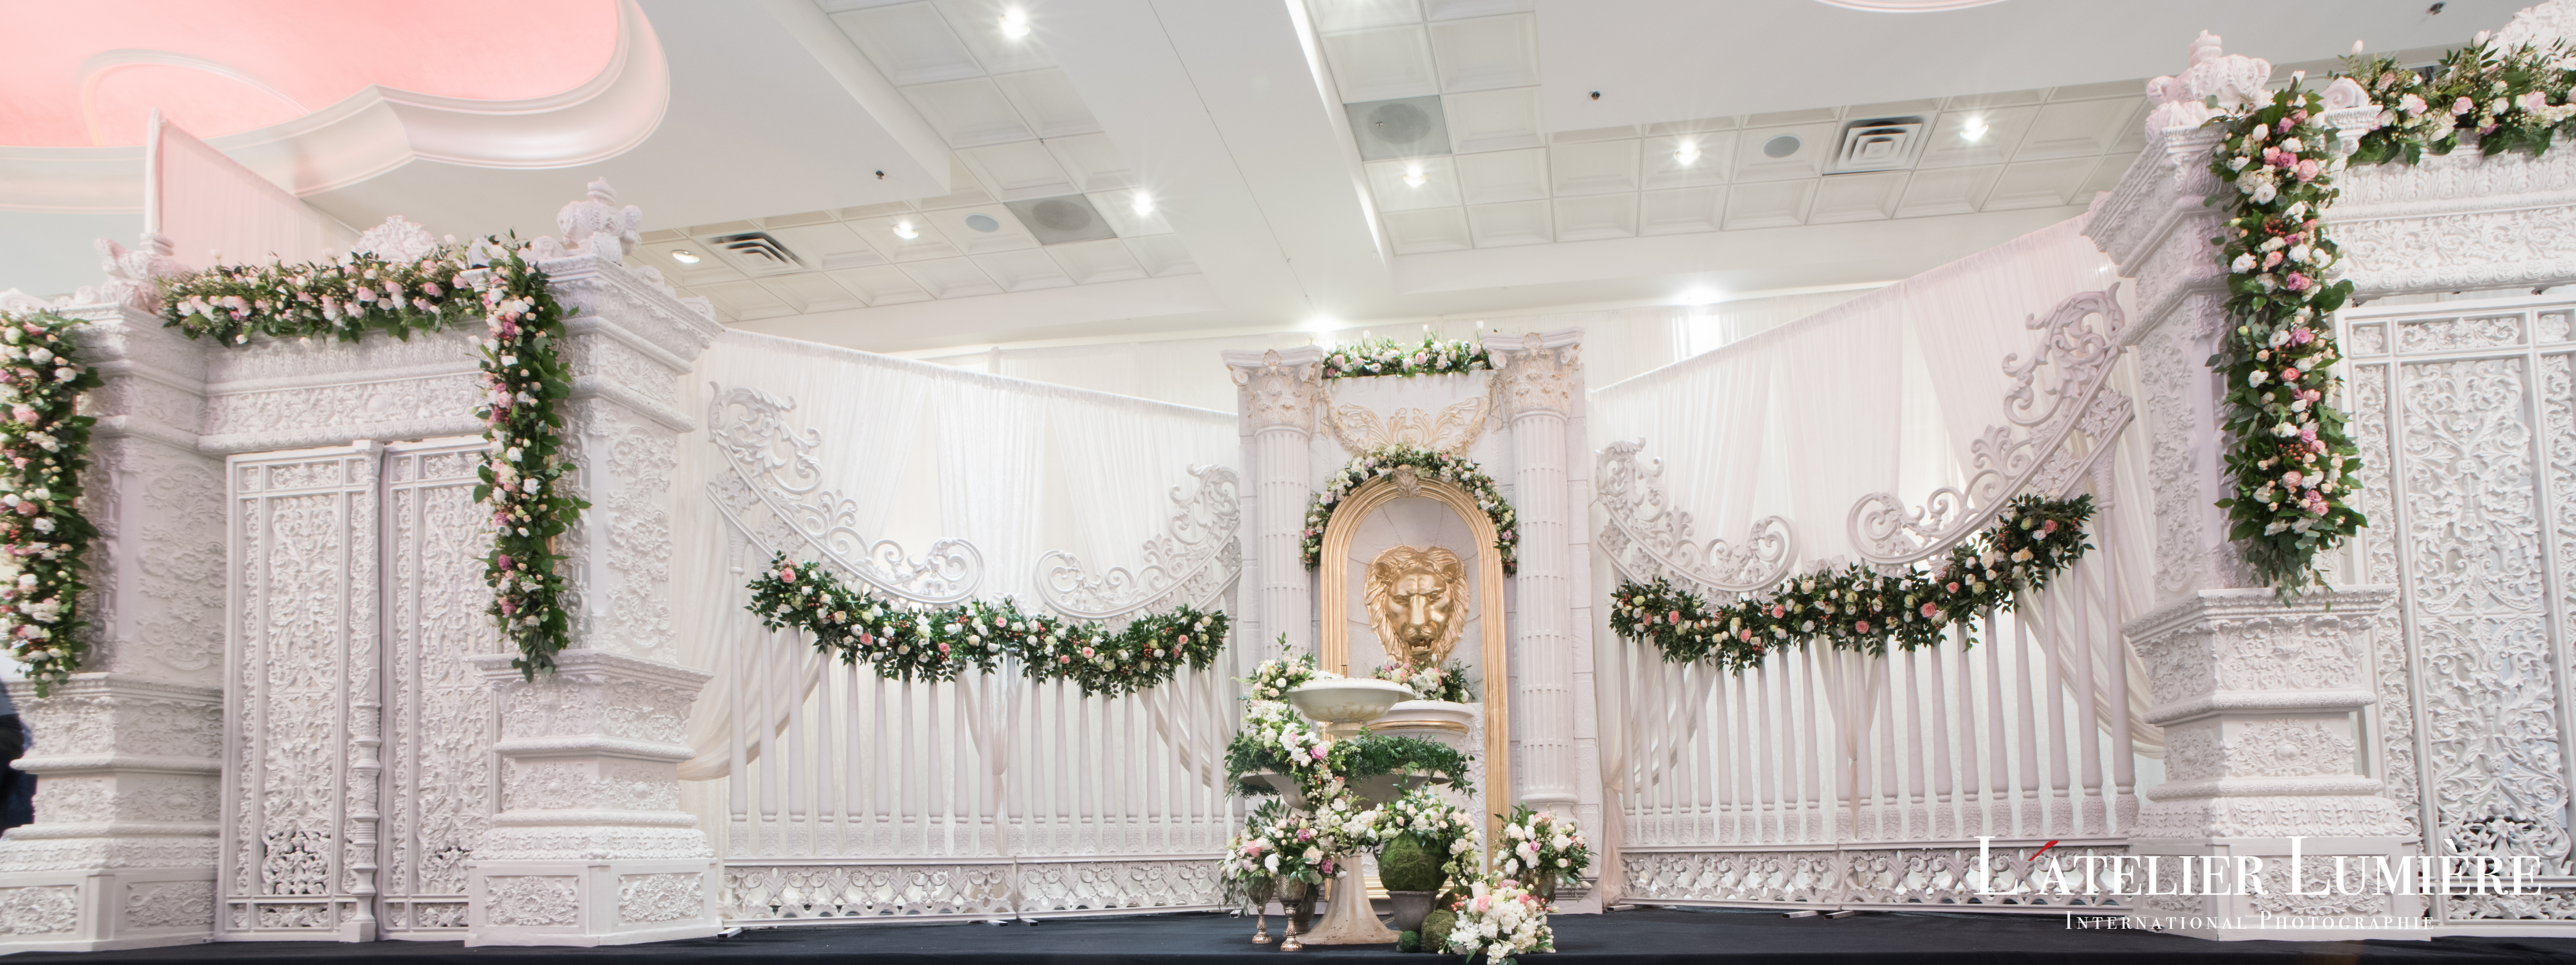 Wedding Decorators Mississauga (3)